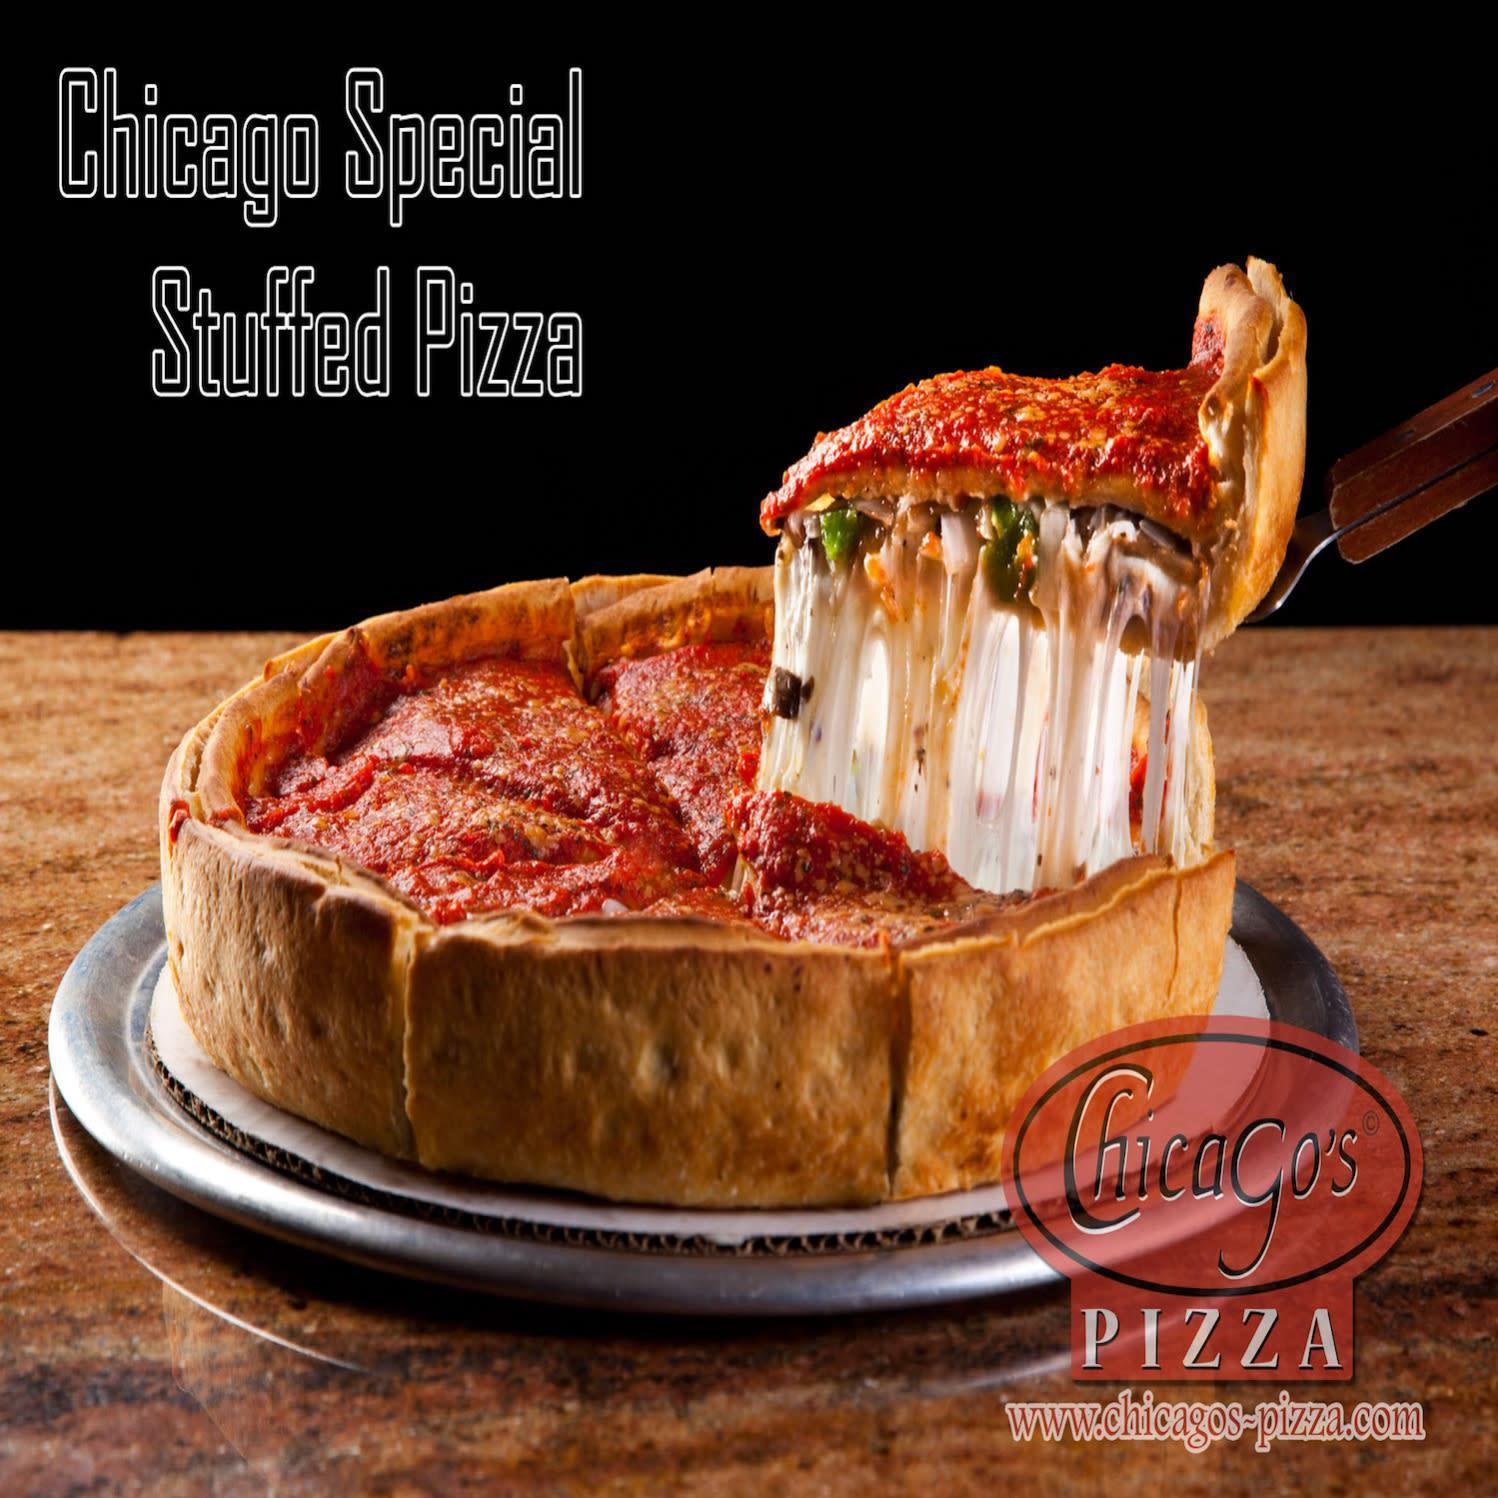 Chicagos's Pizza image 12